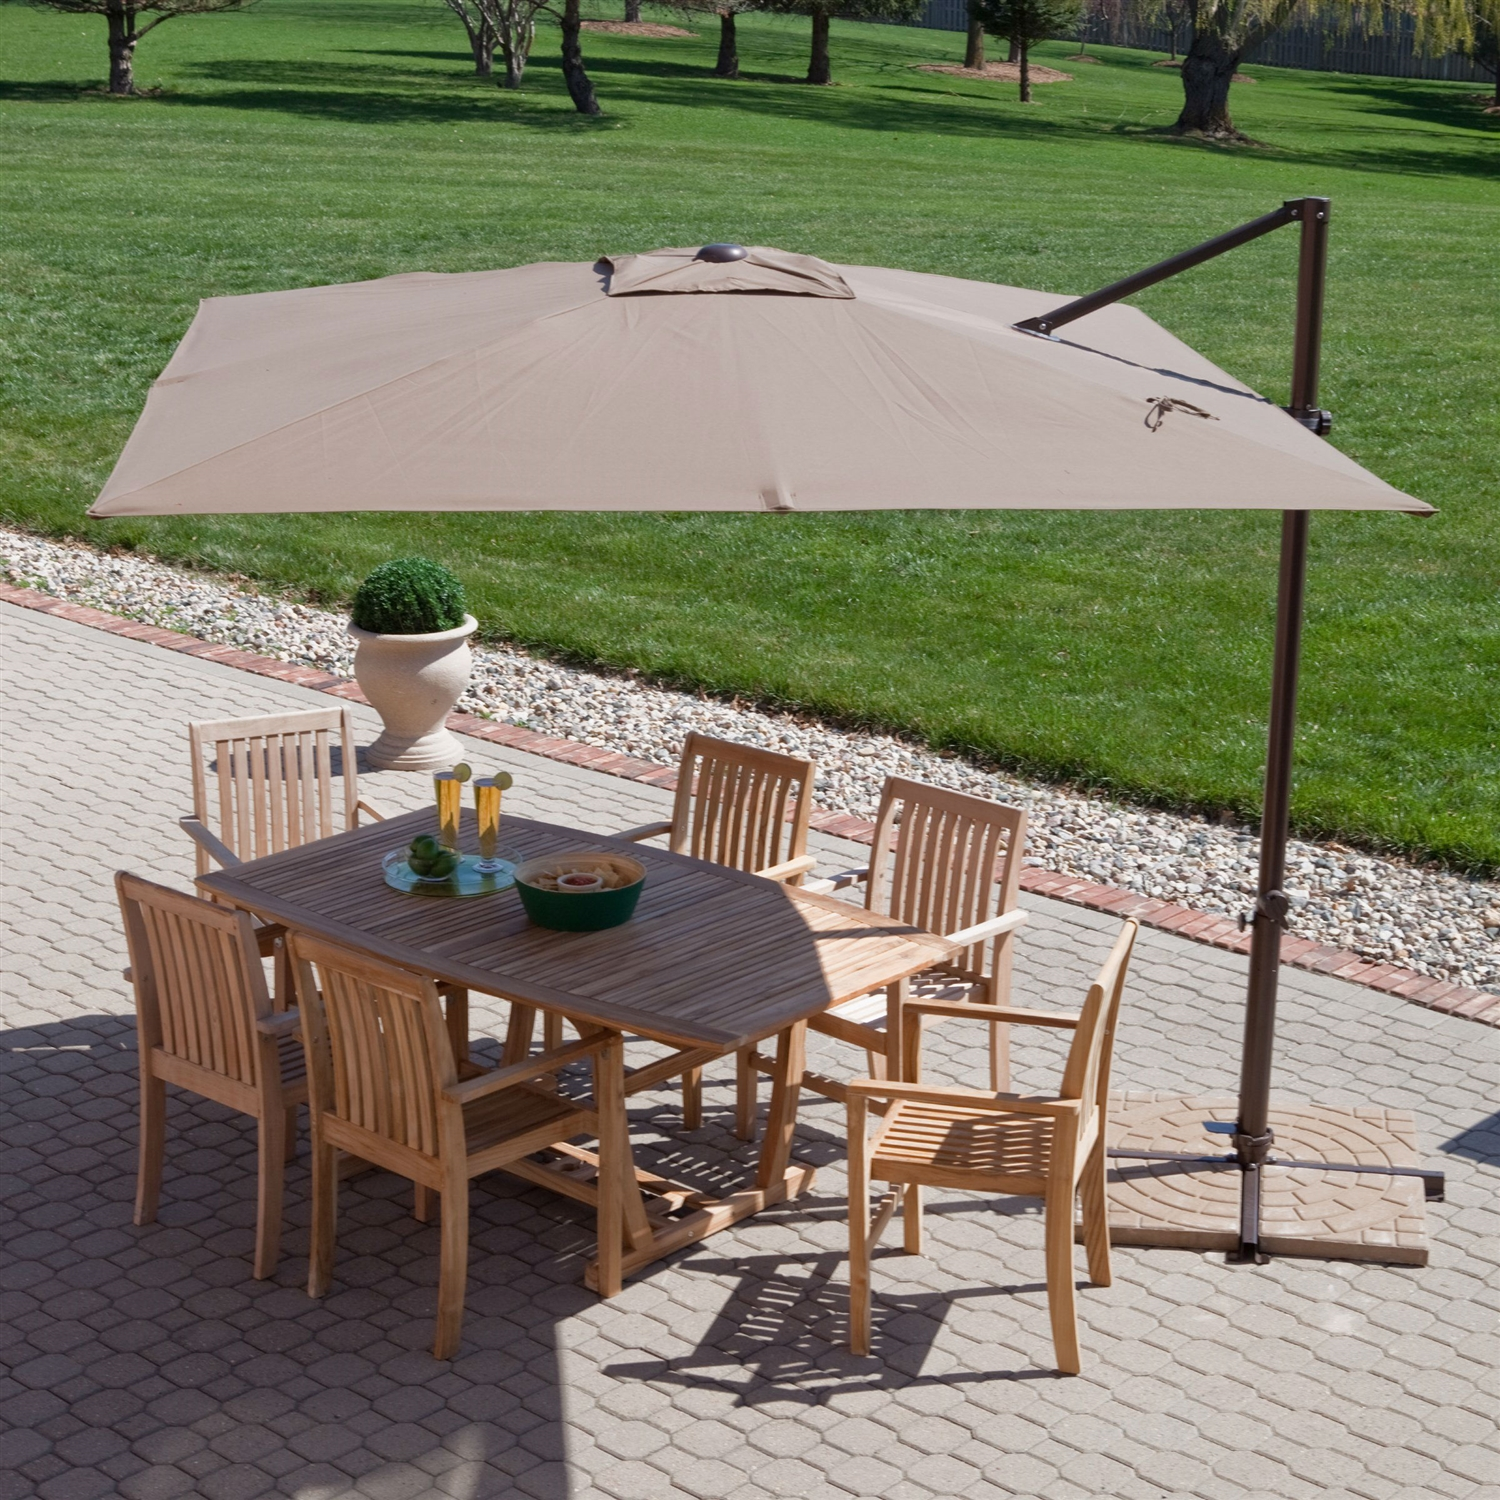 Modern 8 5 Ft fset Cantilever Square Patio Umbrella with Mocha